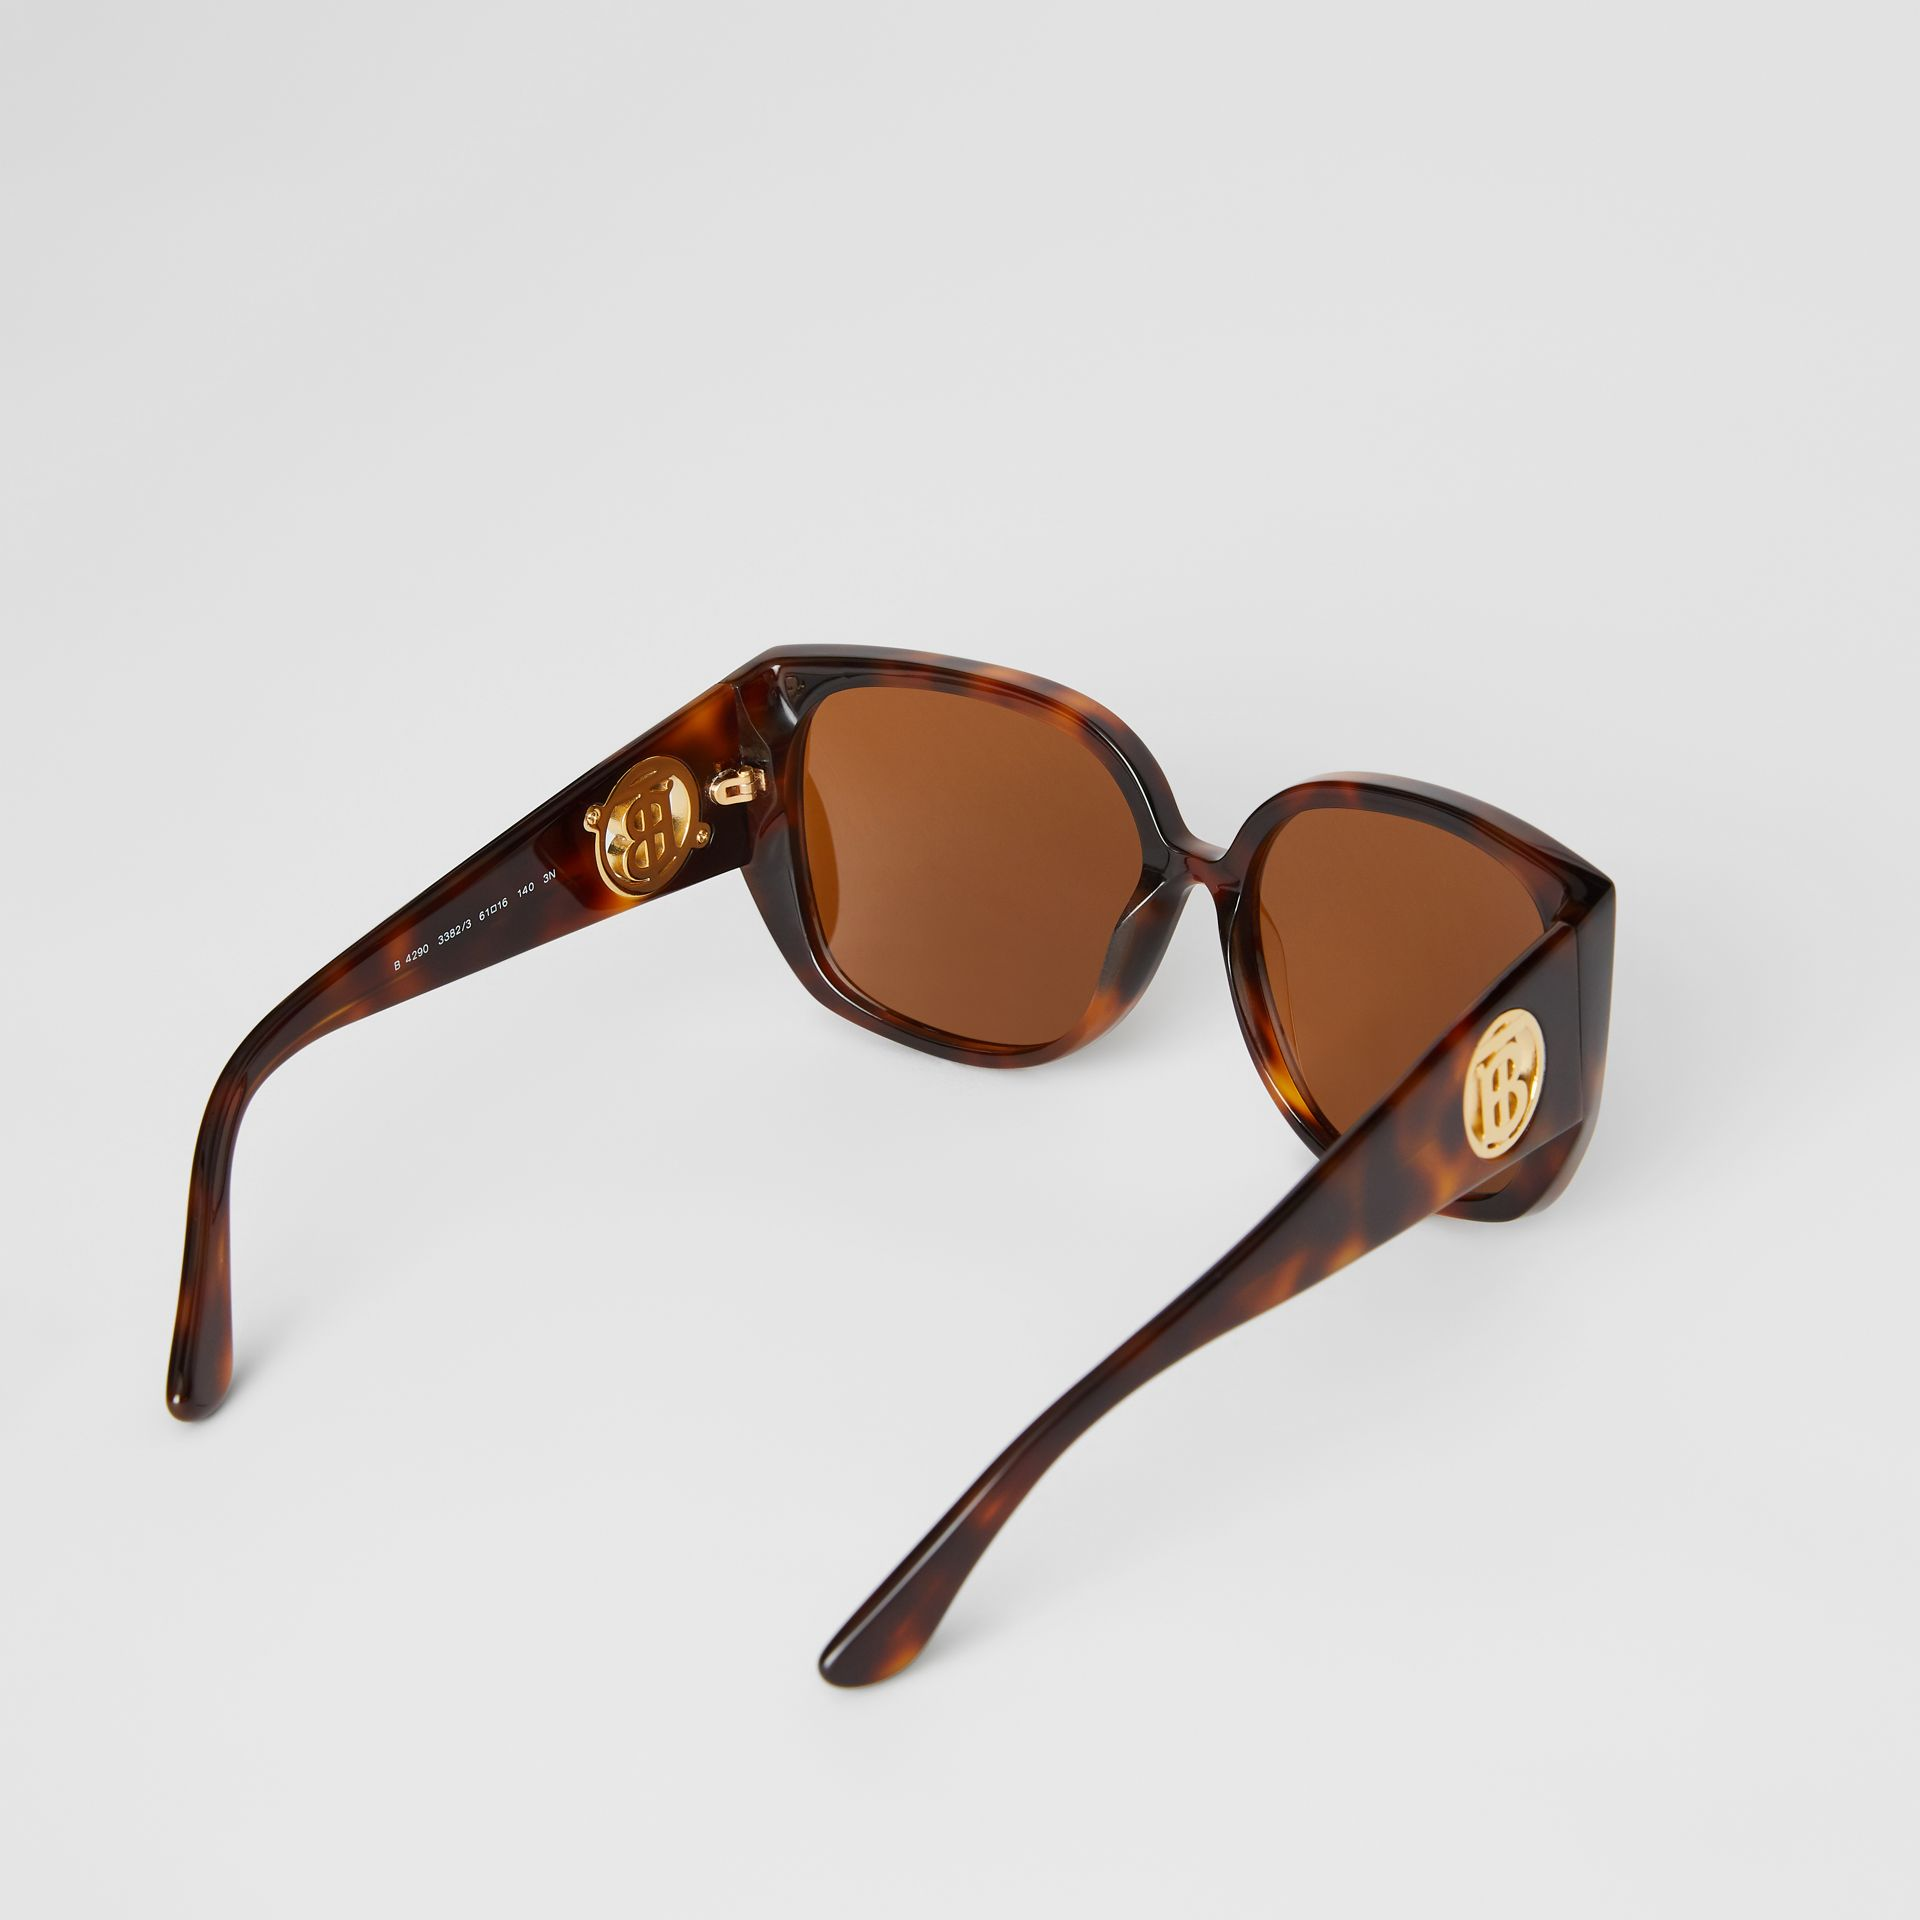 Oversized Butterfly Frame Sunglasses in Tortoiseshell - Women | Burberry Singapore - gallery image 3